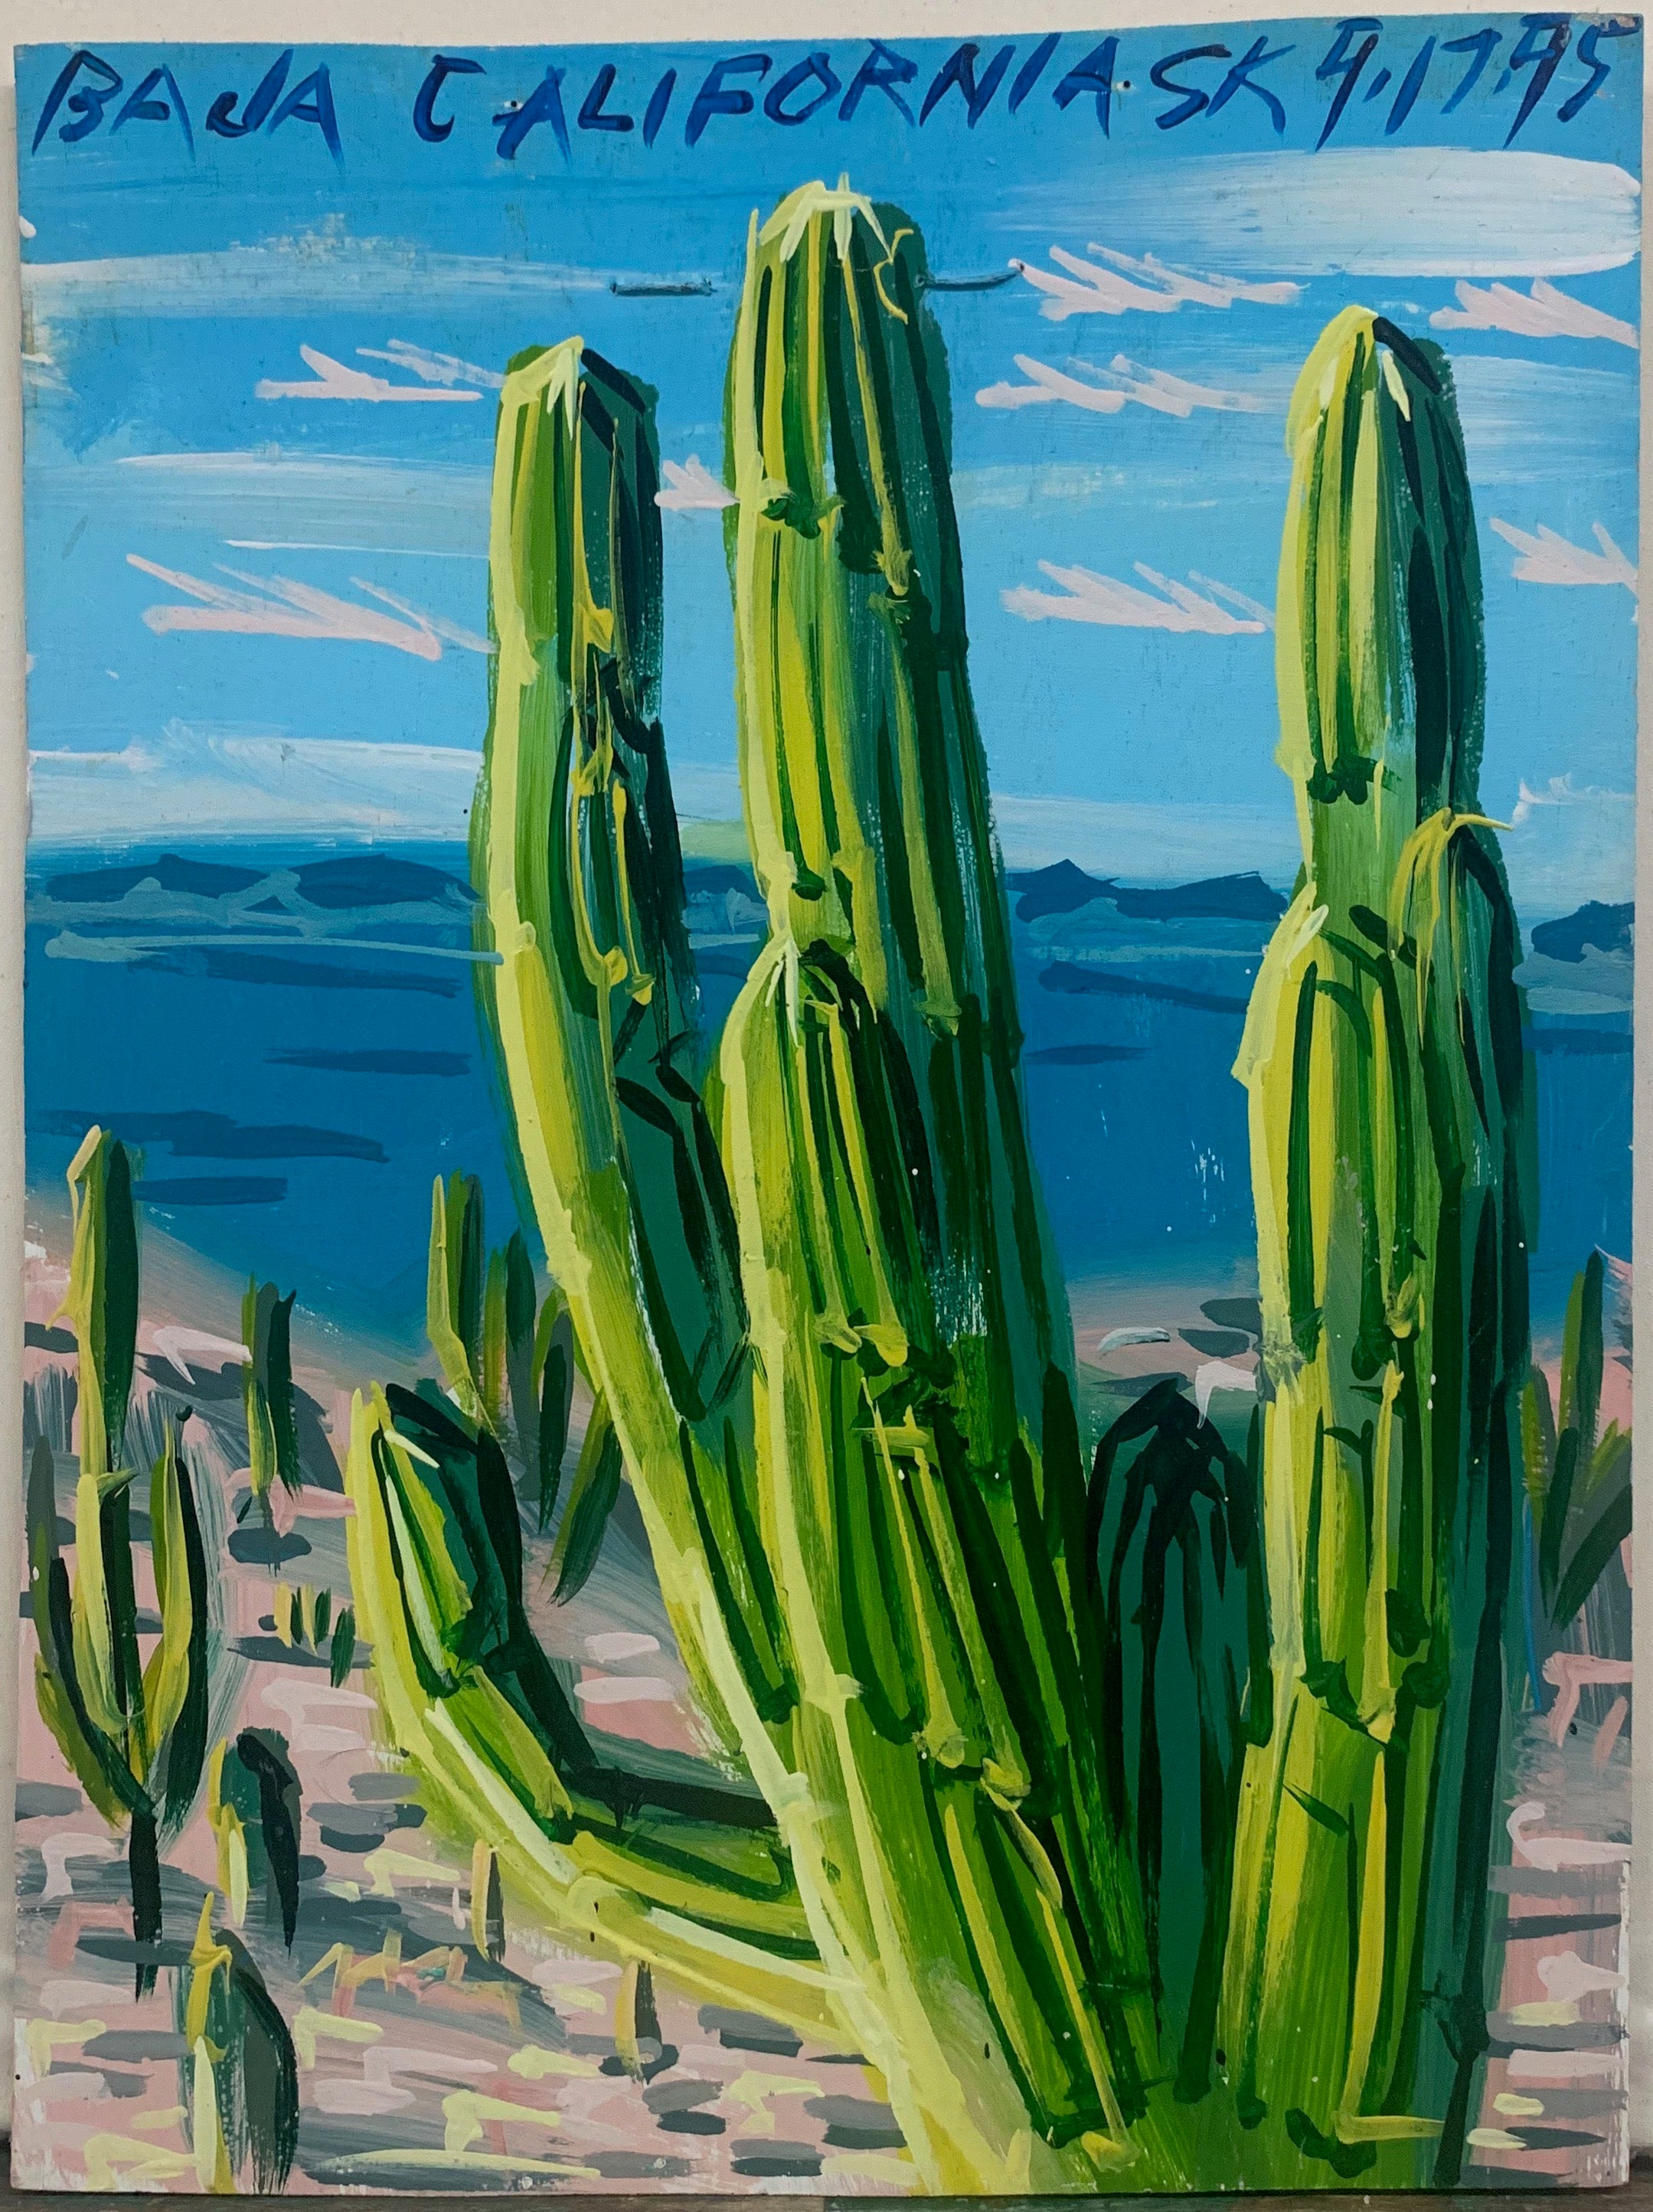 A Steve Keene painting of Baja, California with cacti.